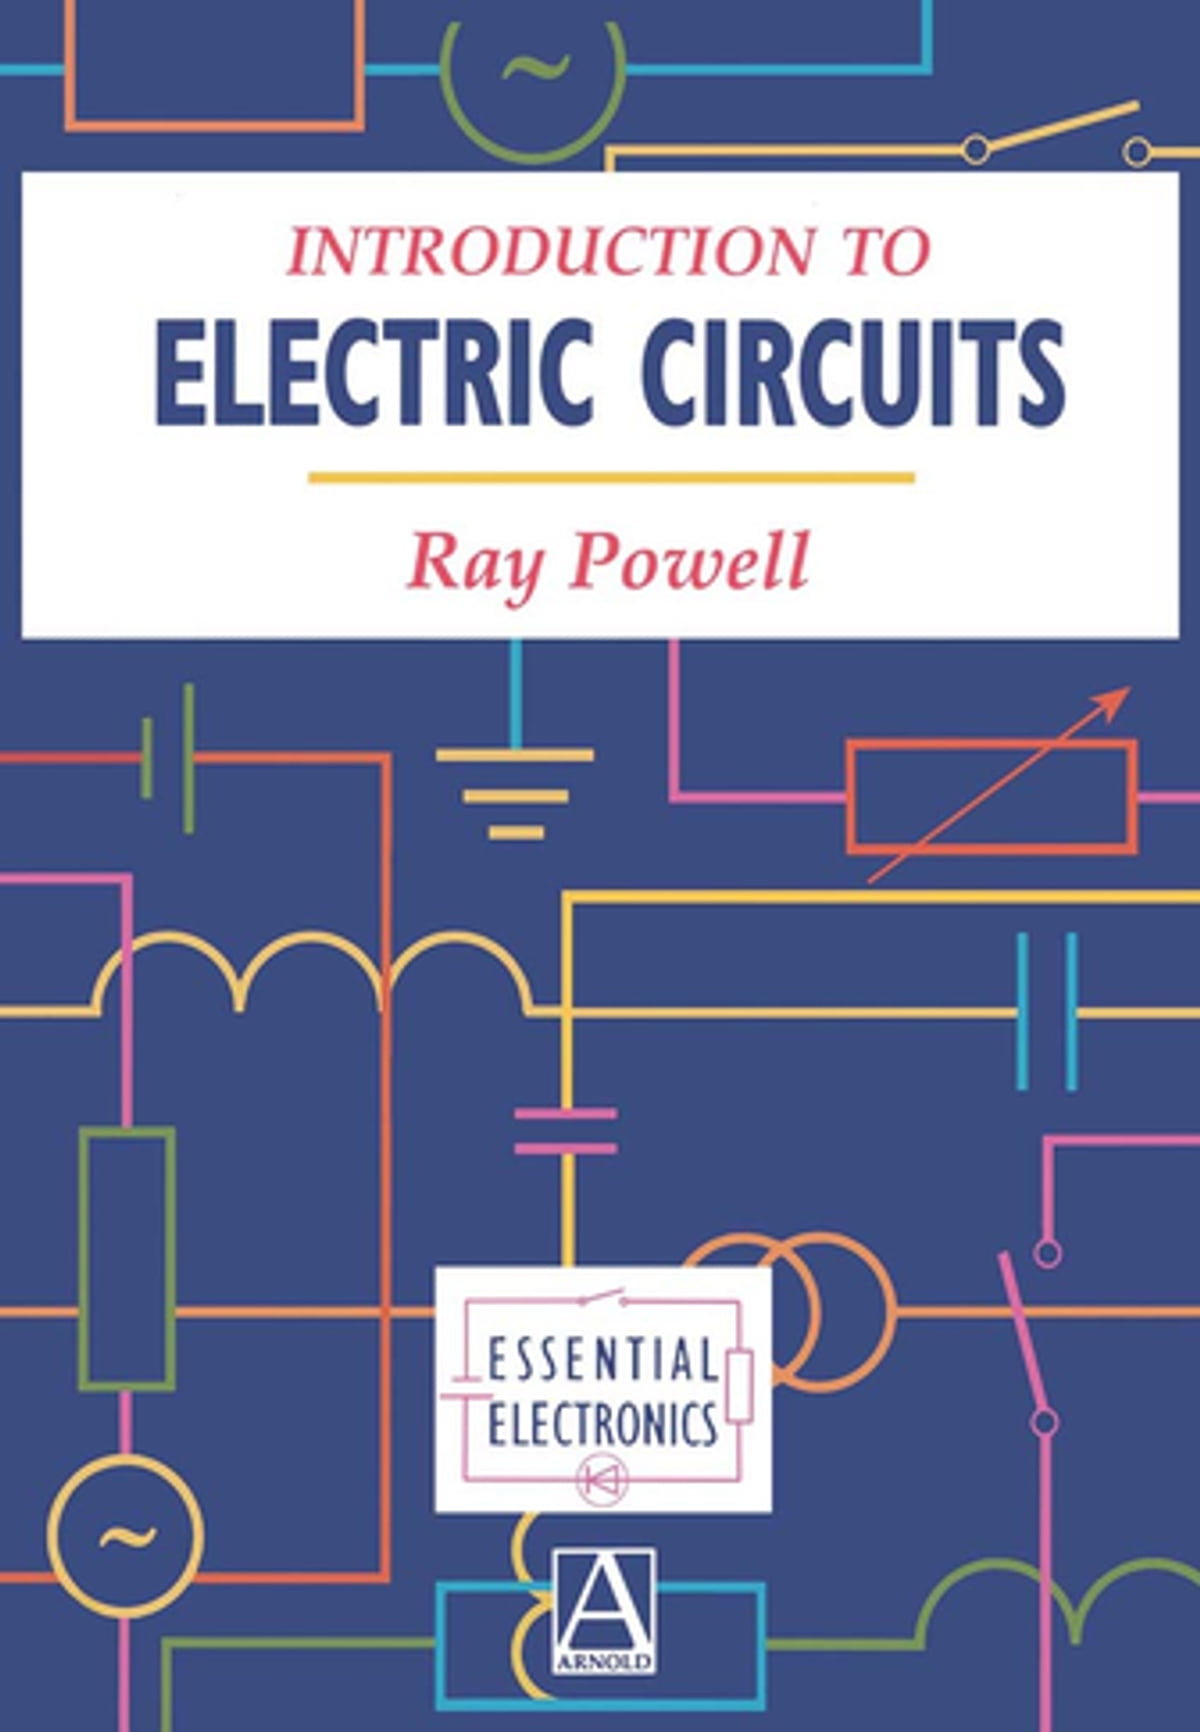 Introduction To Electric Circuits Ebook By Ray Powell Electronic Electronics Circuit Analysis Free 9780080535098 Rakuten Kobo